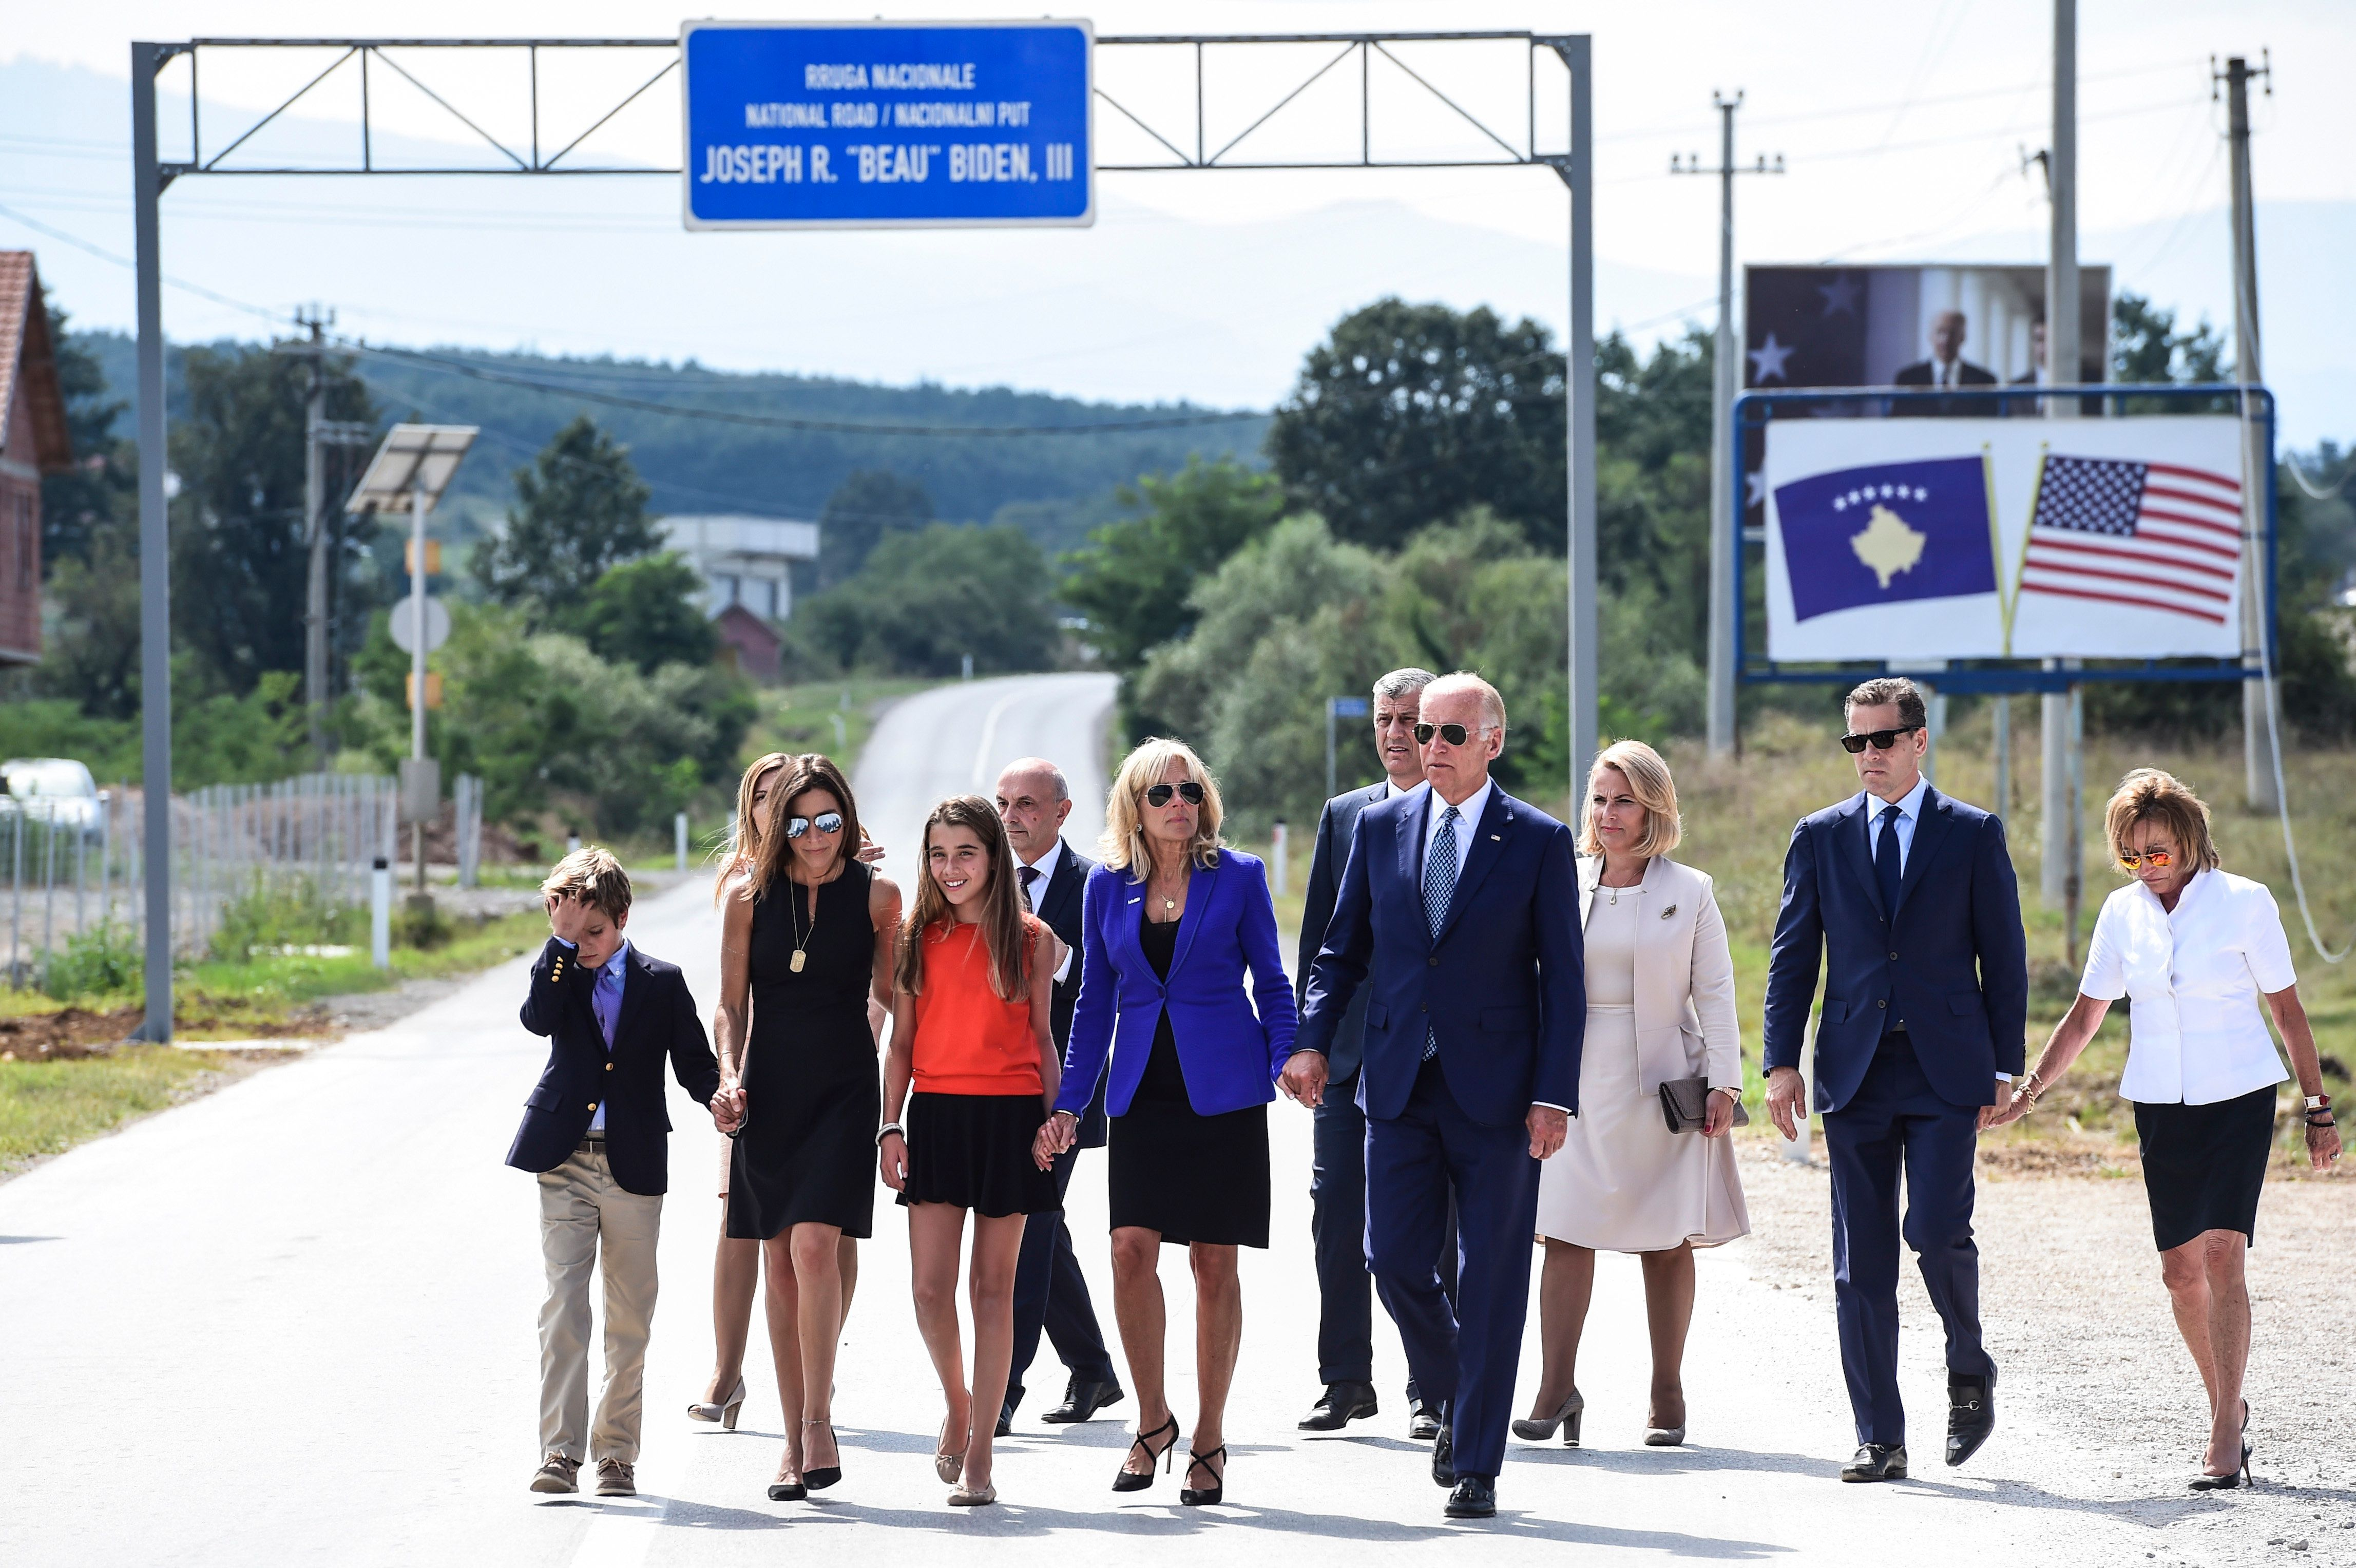 US Vice President Joe Biden (C) joined by his wife Dr Jill Biden and other family members walk on a national road named after their late son Joseph 'Beau' Biden, near the village of Sojevo on August 17, 2016. / AFP / ARMEND NIMANI        (Photo credit should read ARMEND NIMANI/AFP/Getty Images)